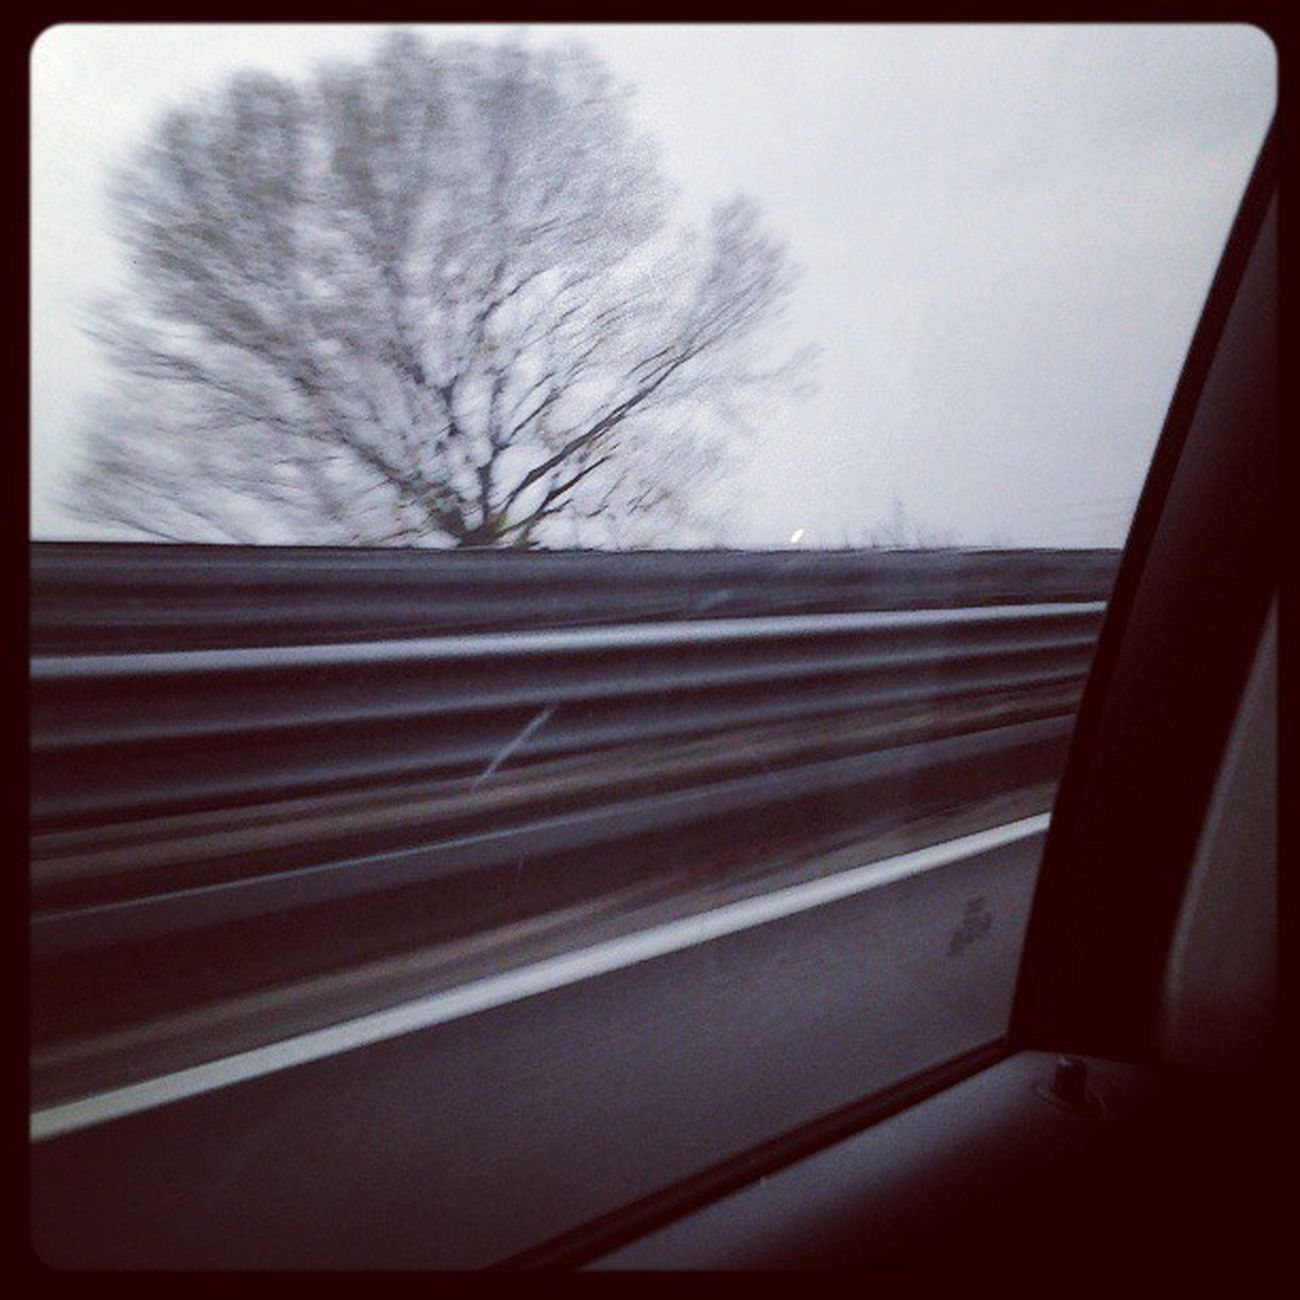 On The Road To  Bareggio Go San Genesio !! Instagram Instaphoto Instaclub